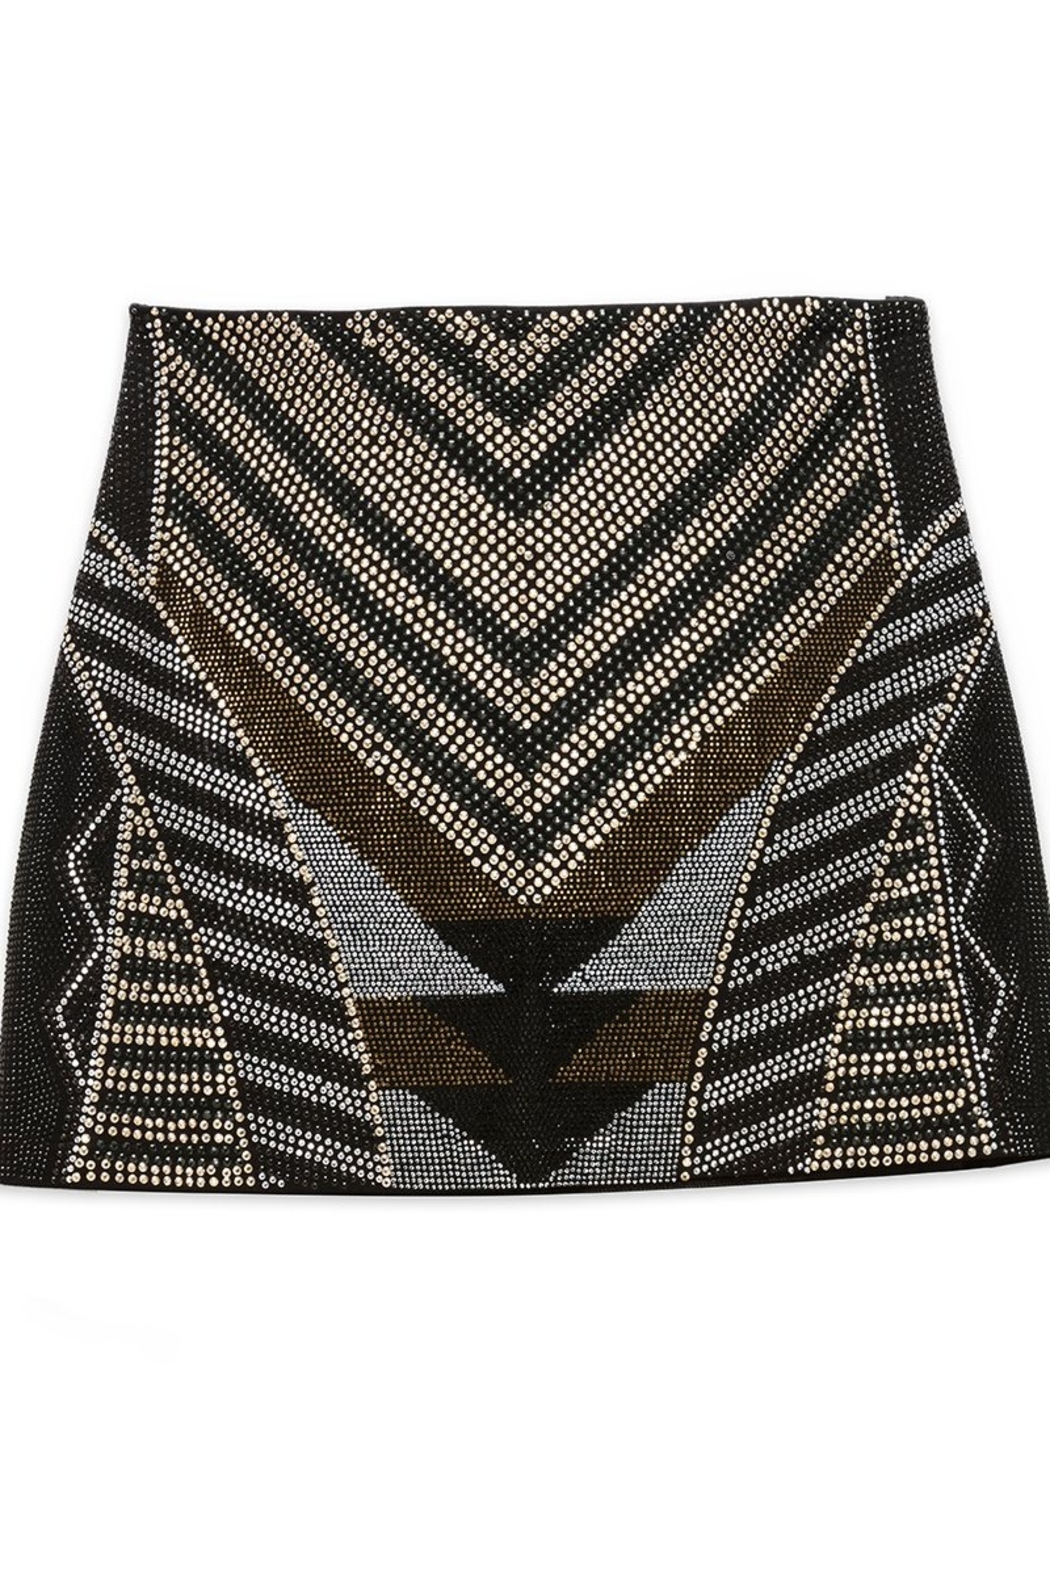 AS by DF Bruna Skirt - Front Full Image